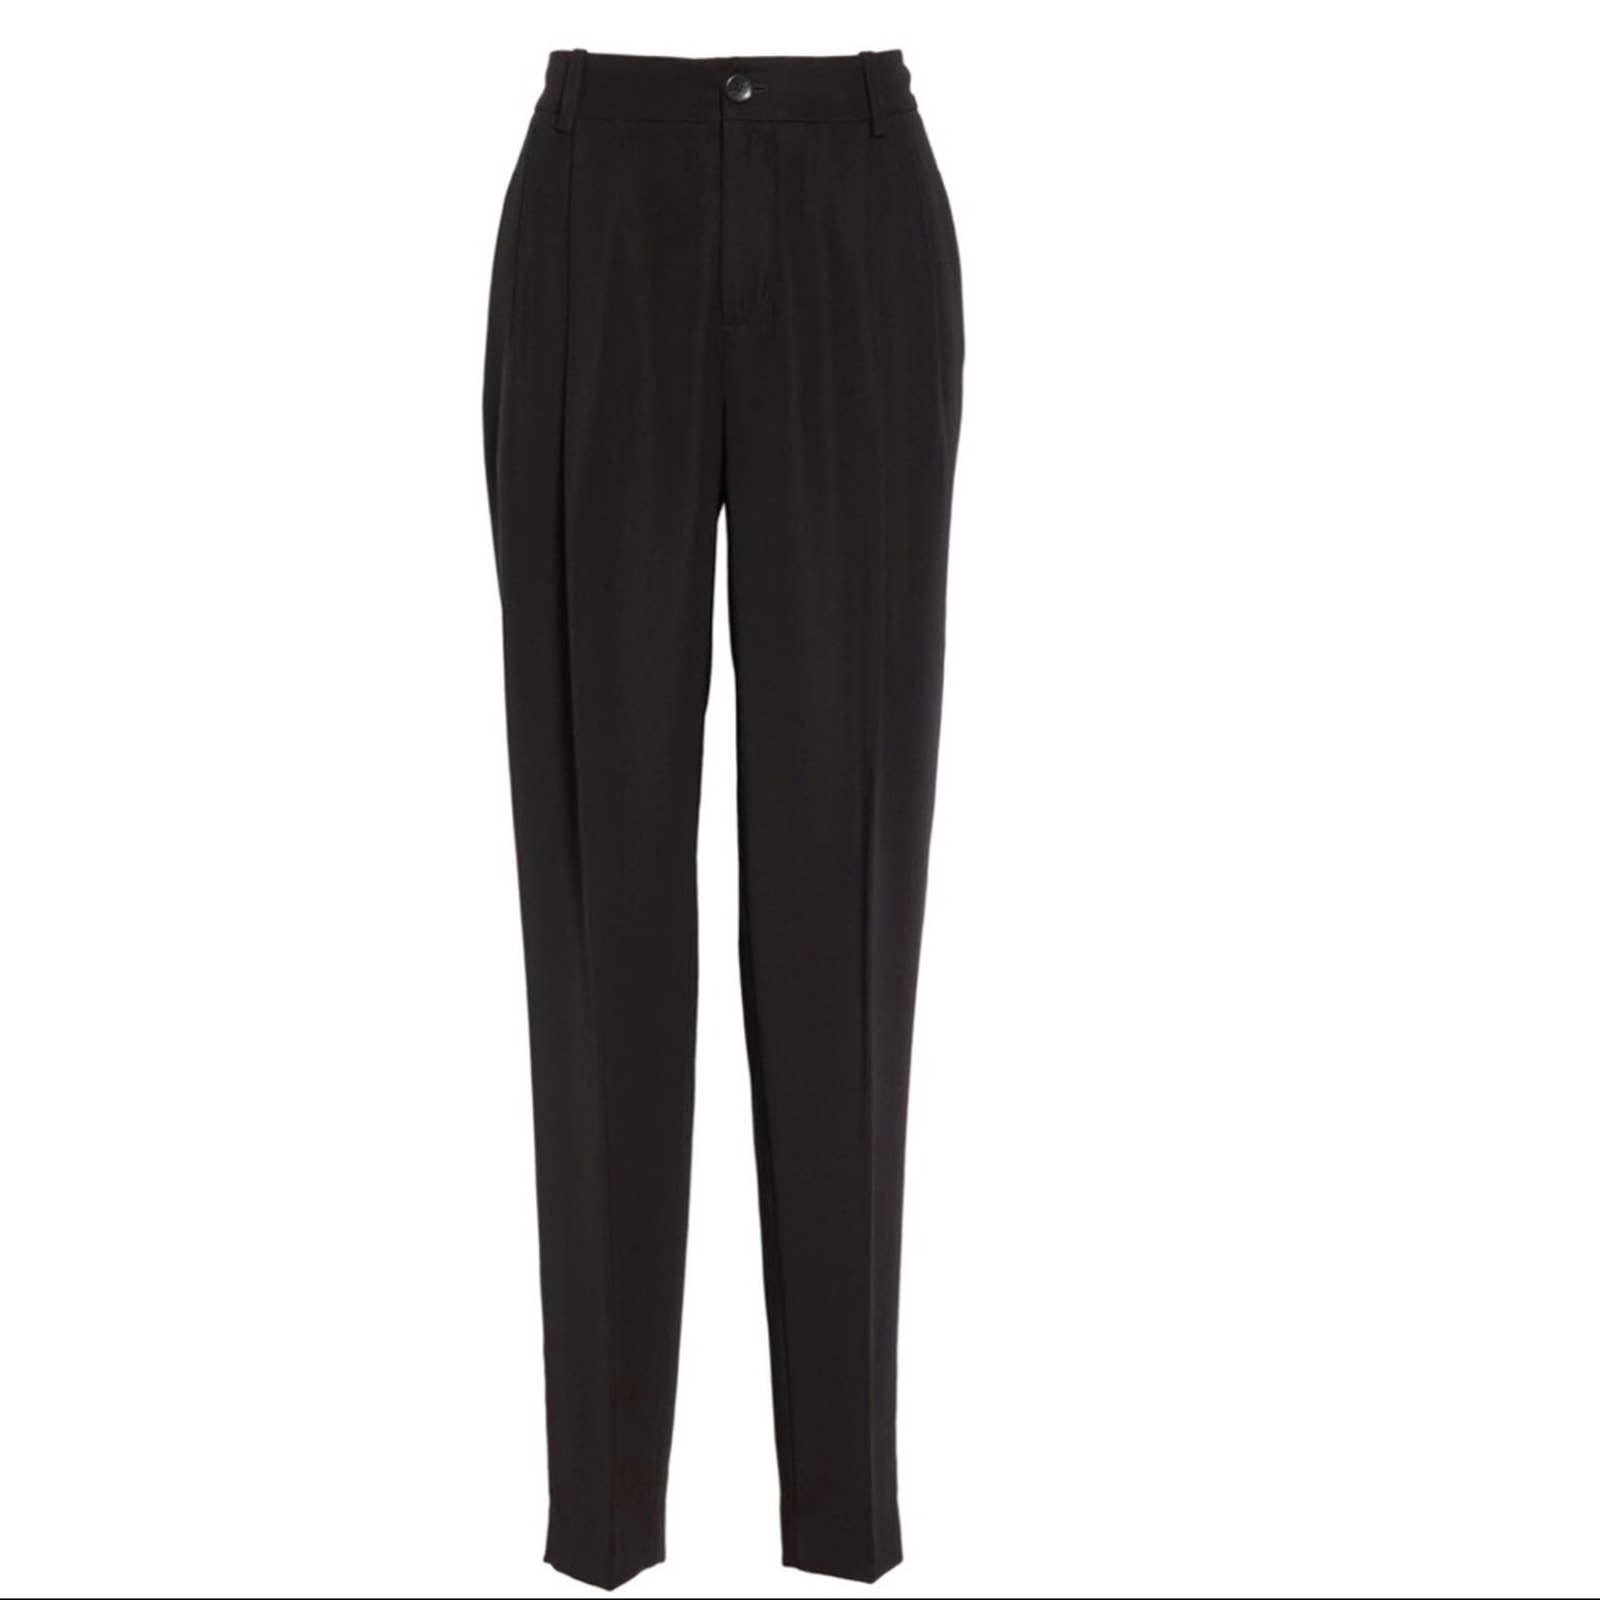 NWT VINCE Pleated Tapered Black Pants 2